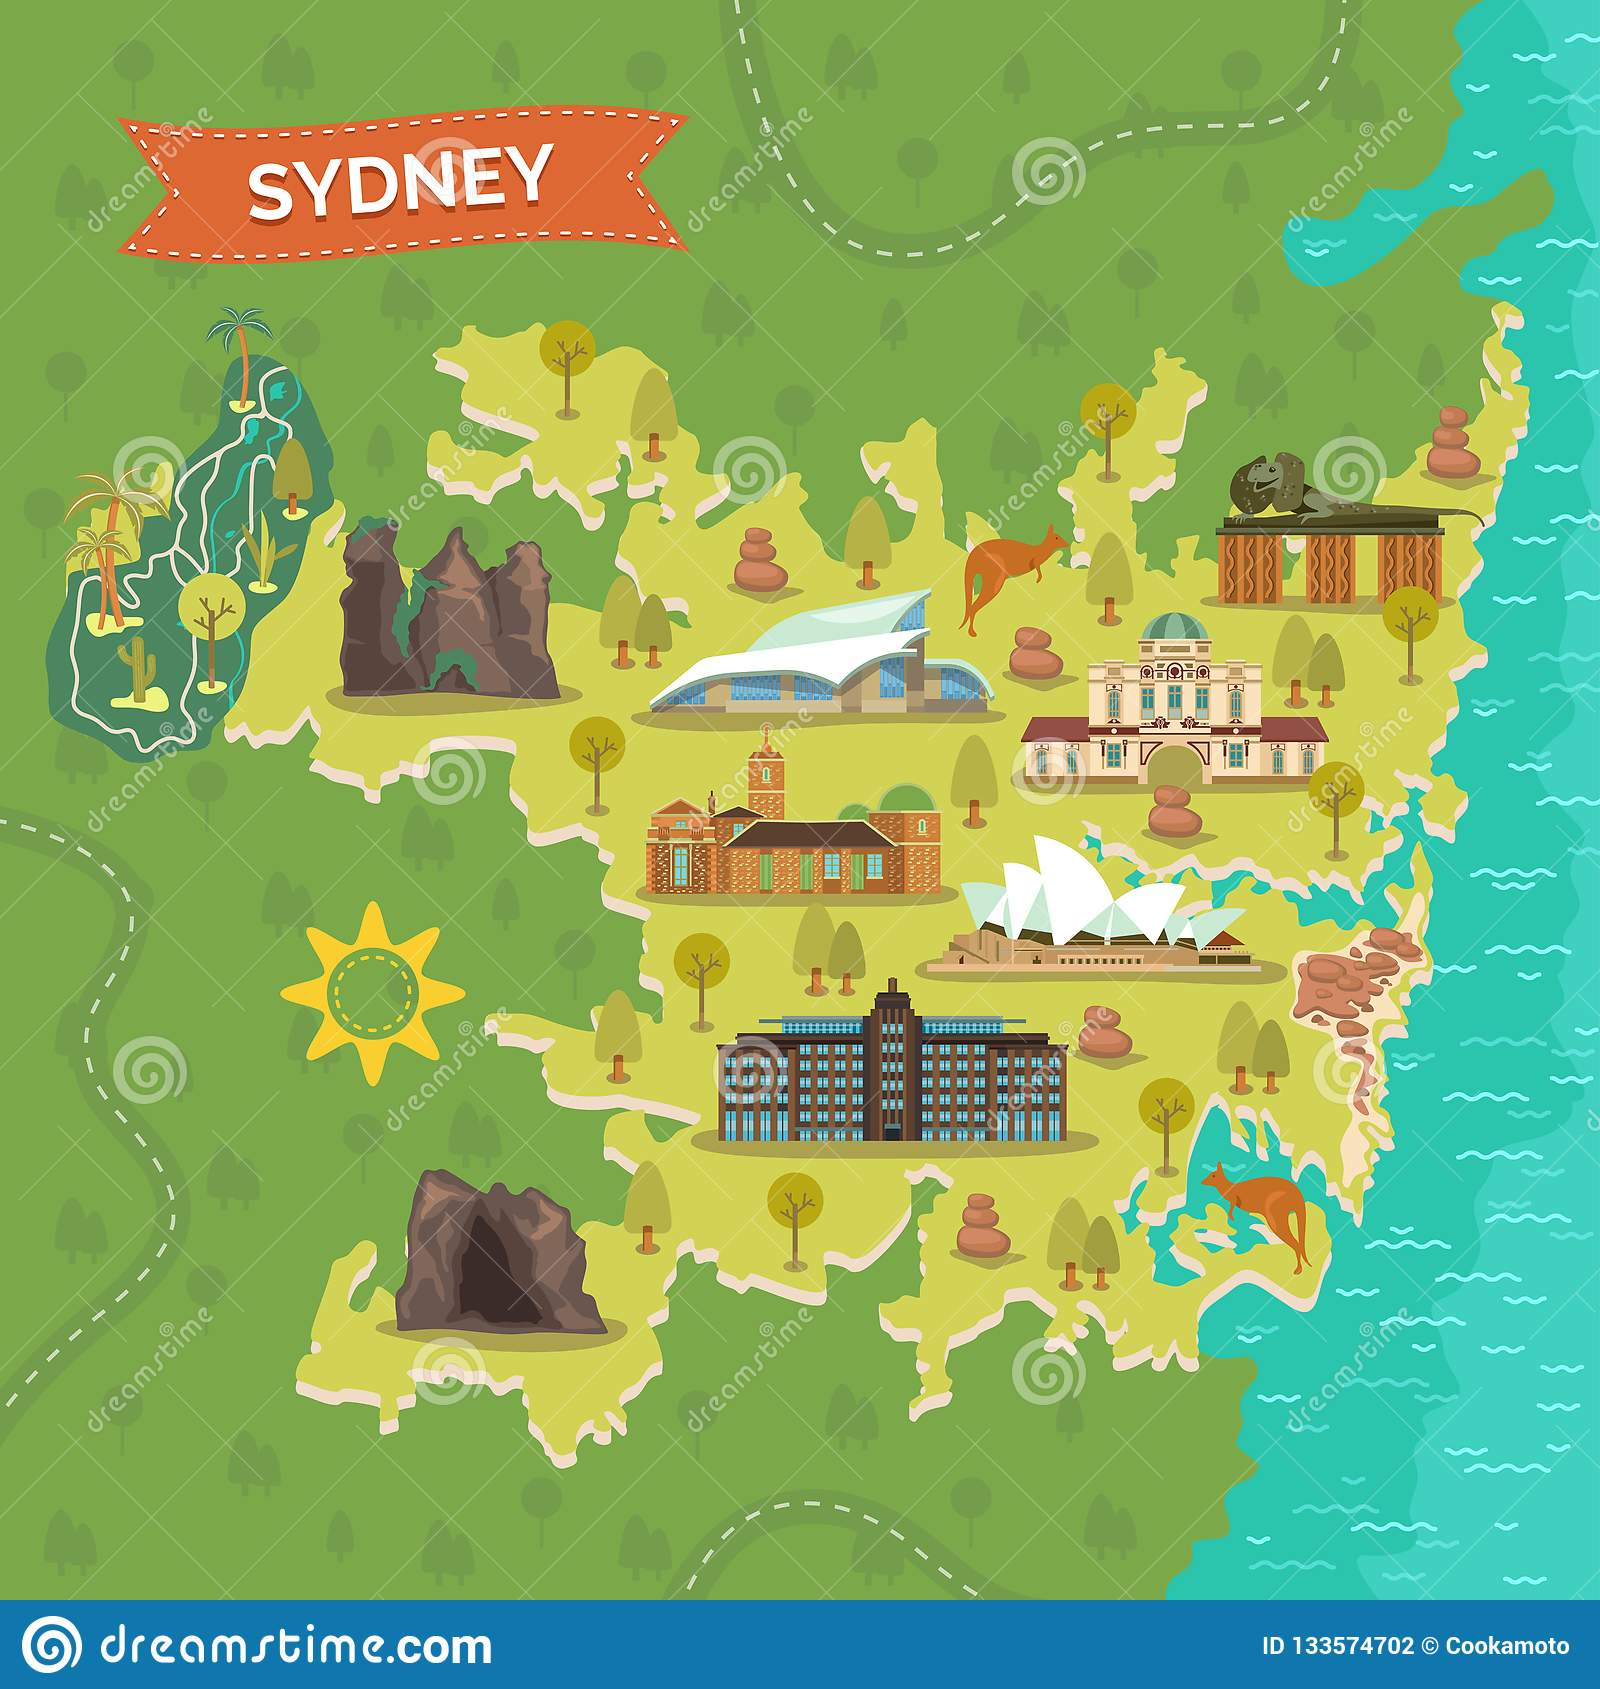 Australia Map Landmarks.Map Of Sydney With Landmarks For Sightseeing Stock Vector